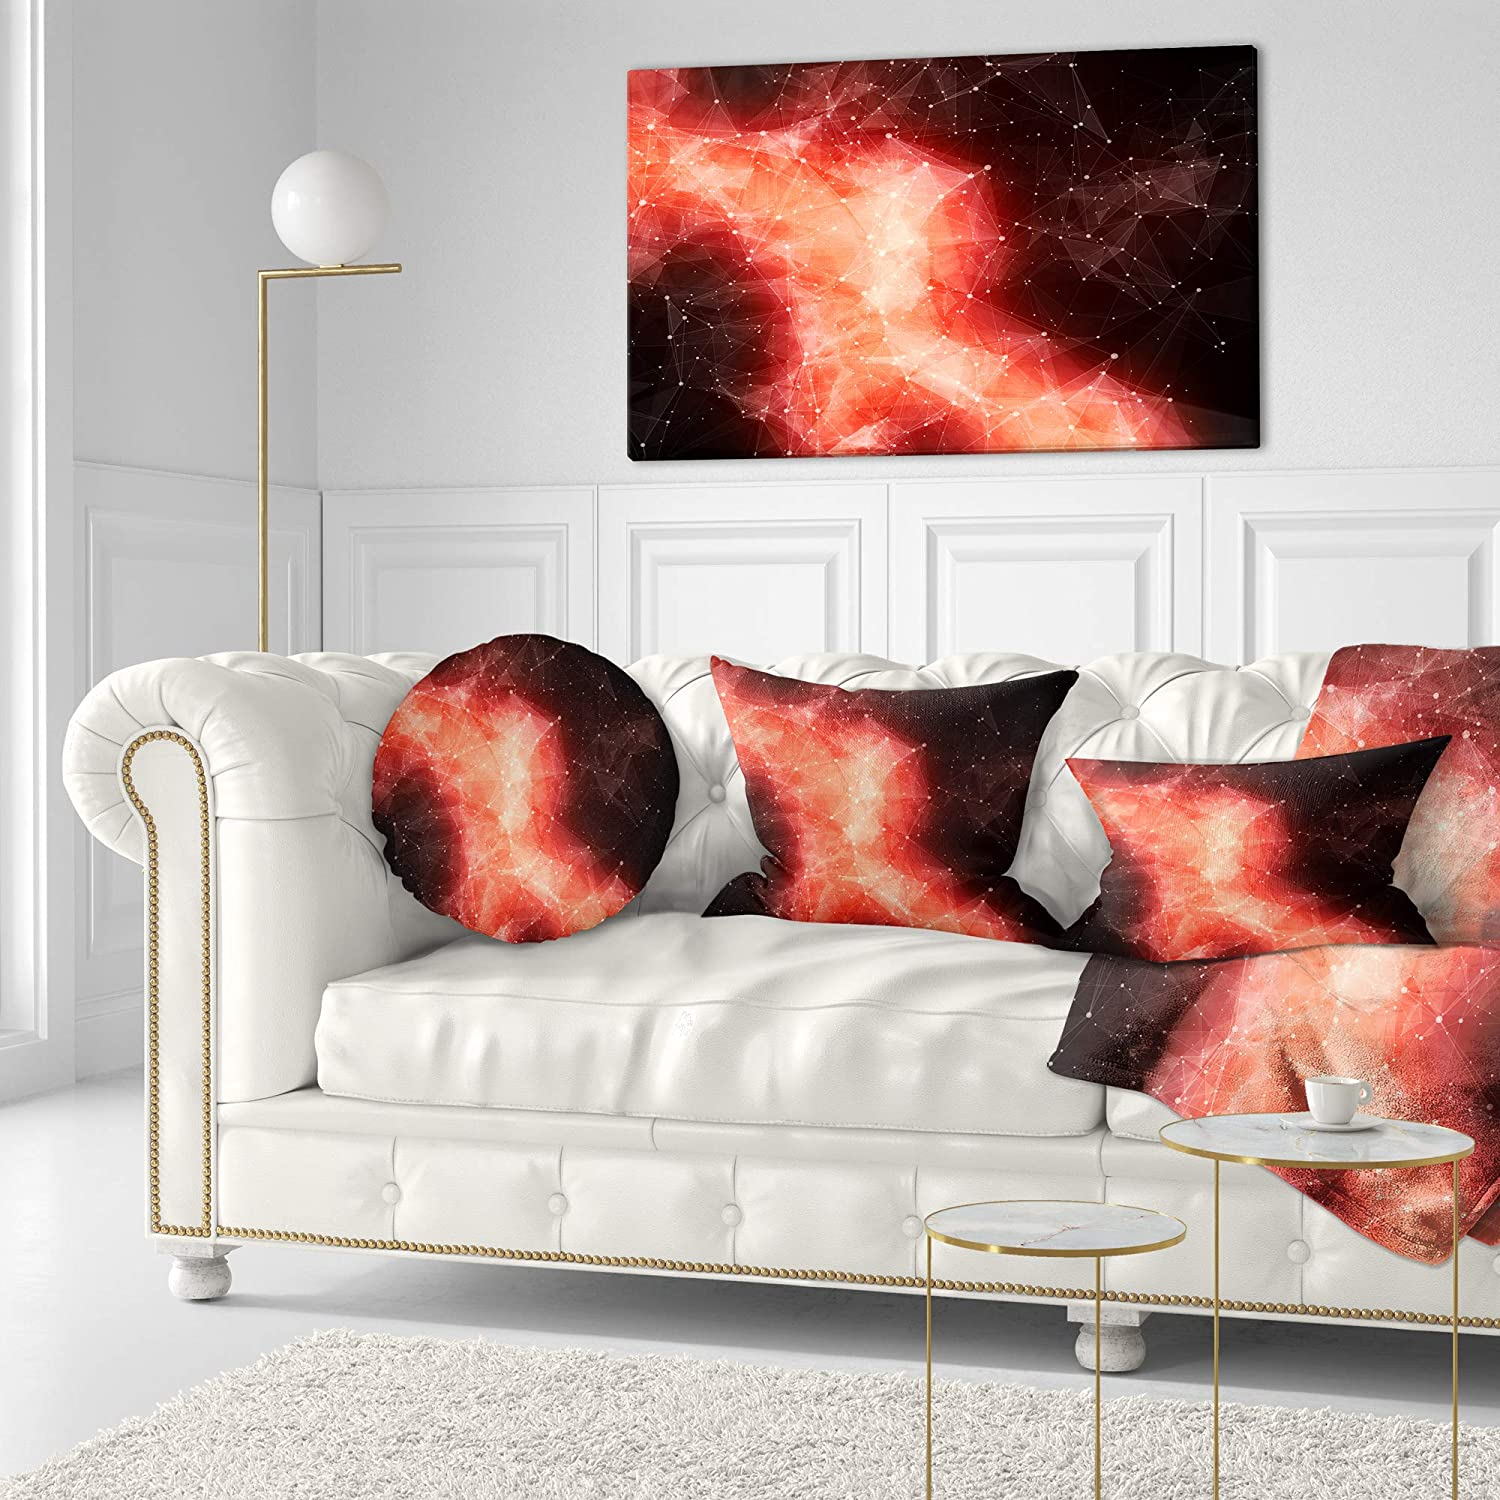 Insert Printed On Both Side Sofa Throw Pillow 16 Designart CU9680-16-16-C Red Nebula in Cosmos Contemporary Round Cushion Cover for Living Room